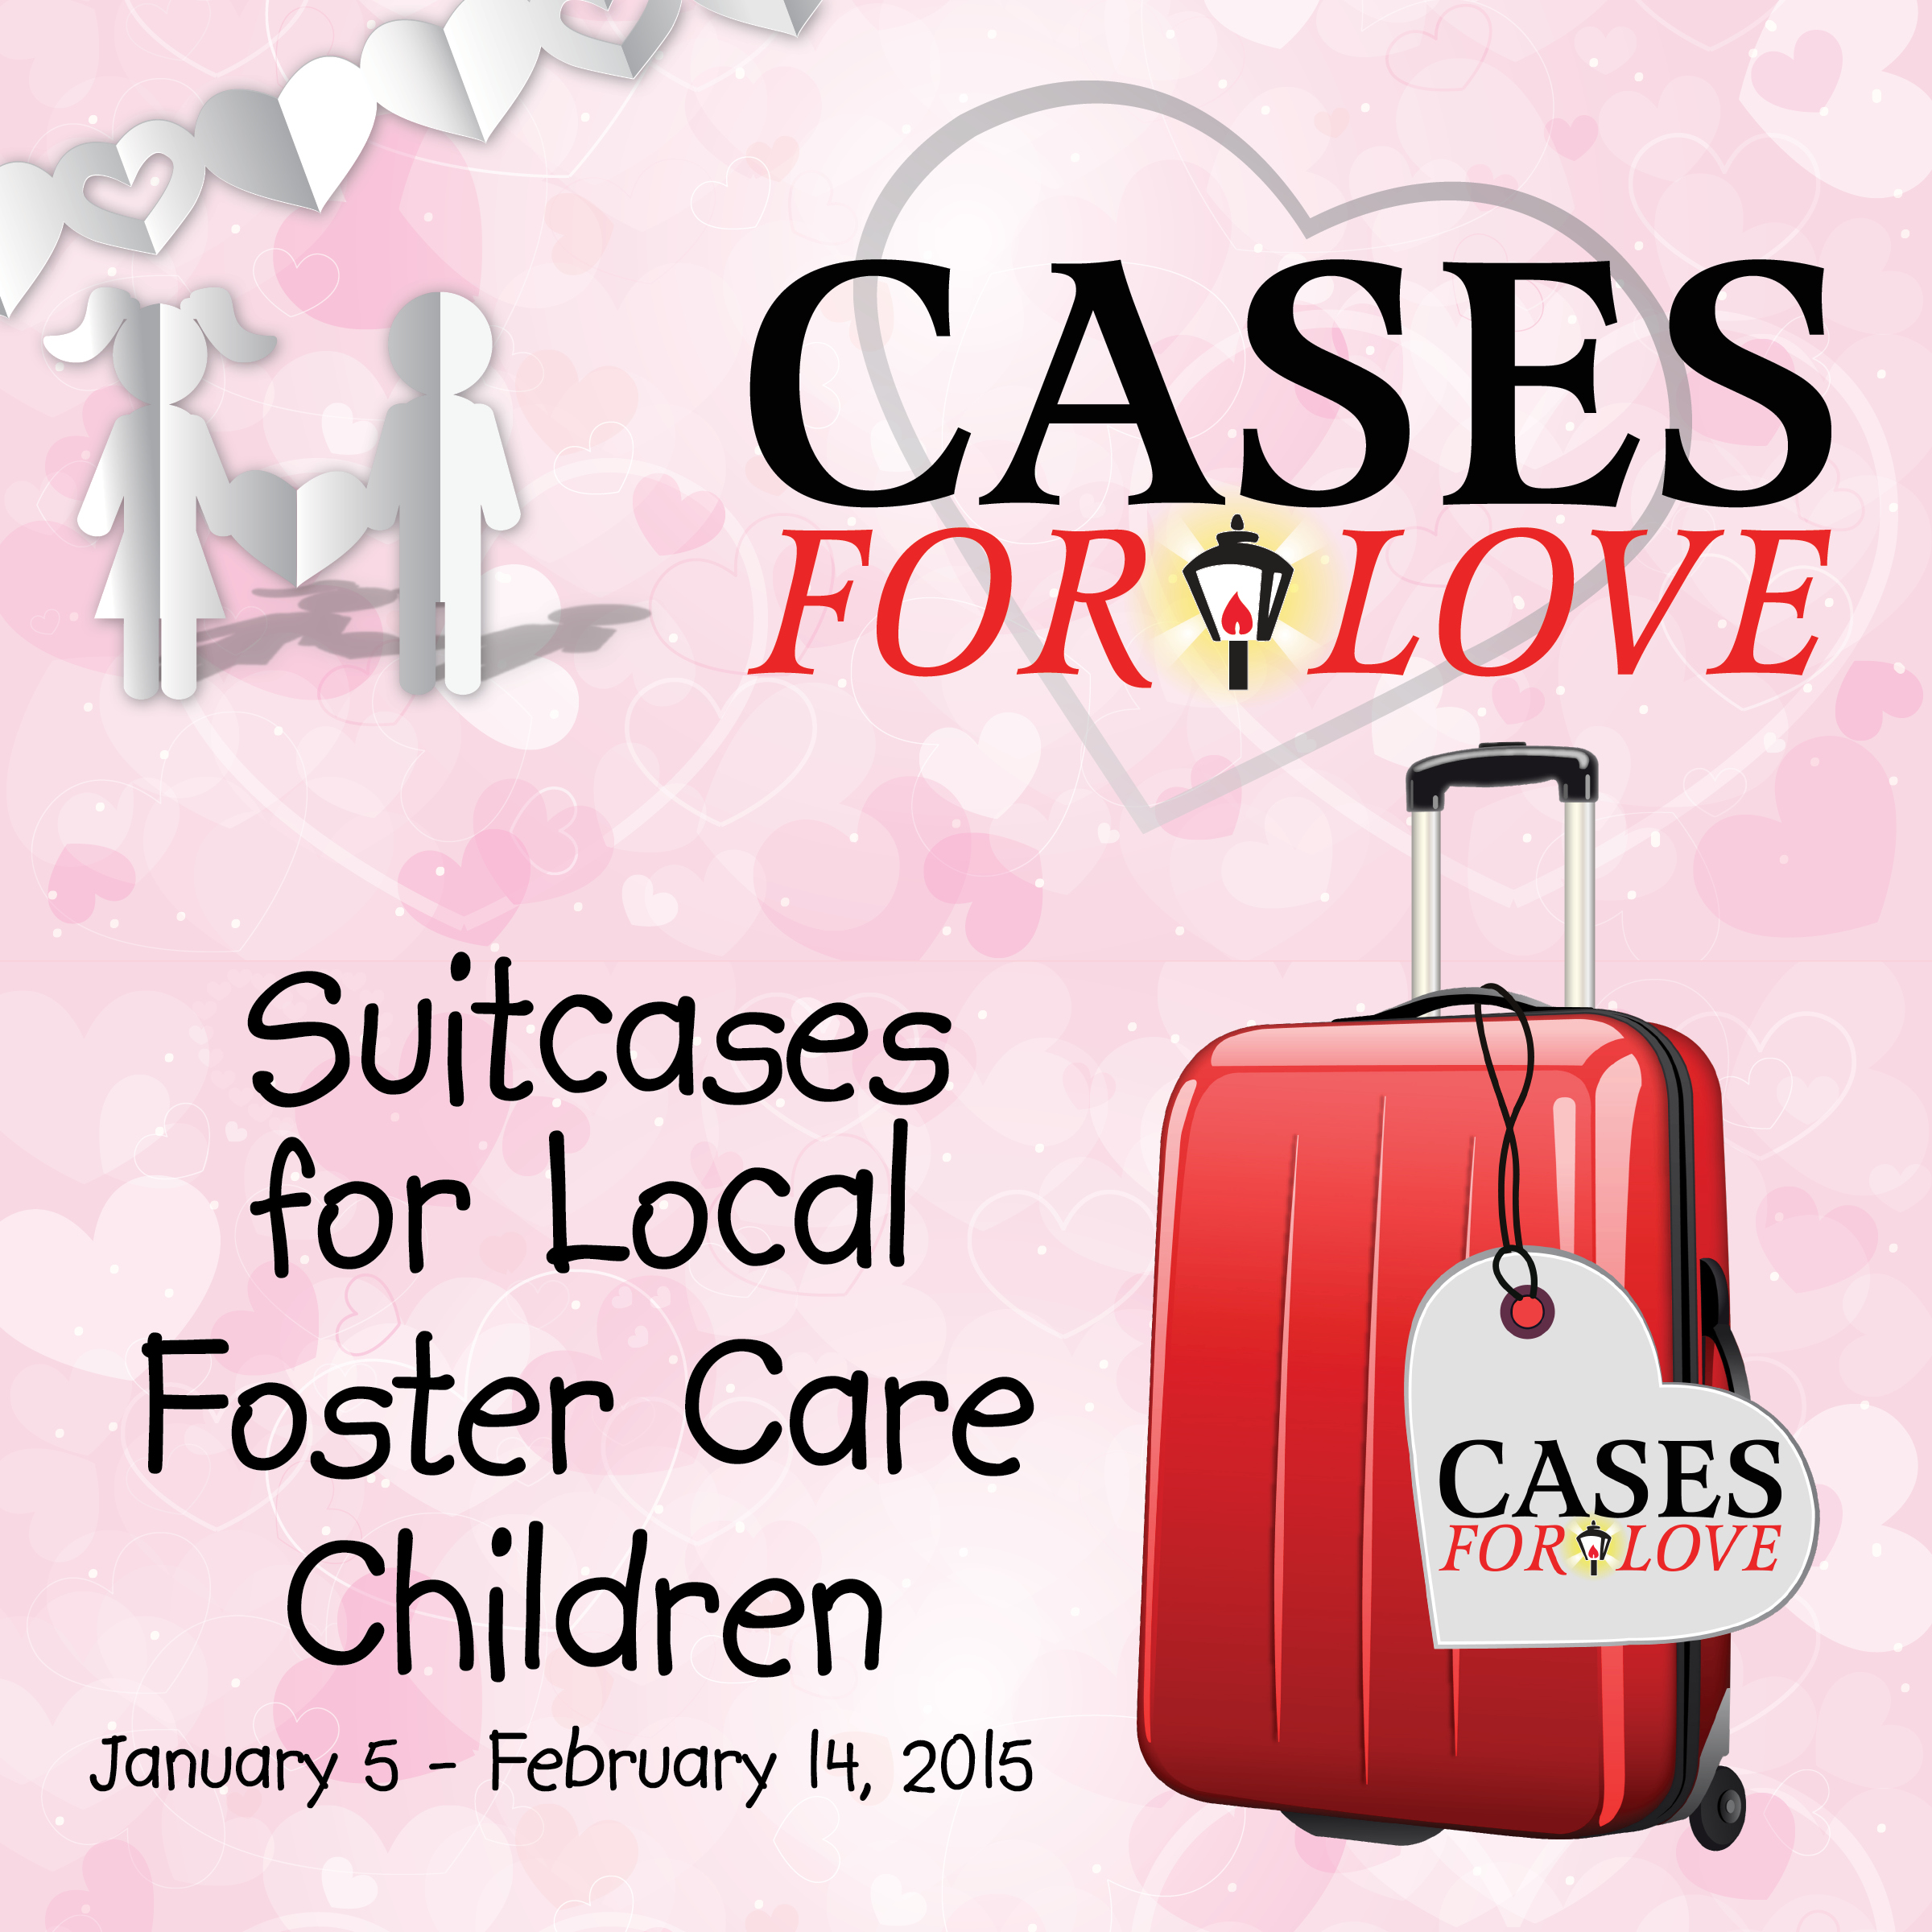 Cases For Love Collects 5 500 Suitcases For Area Foster